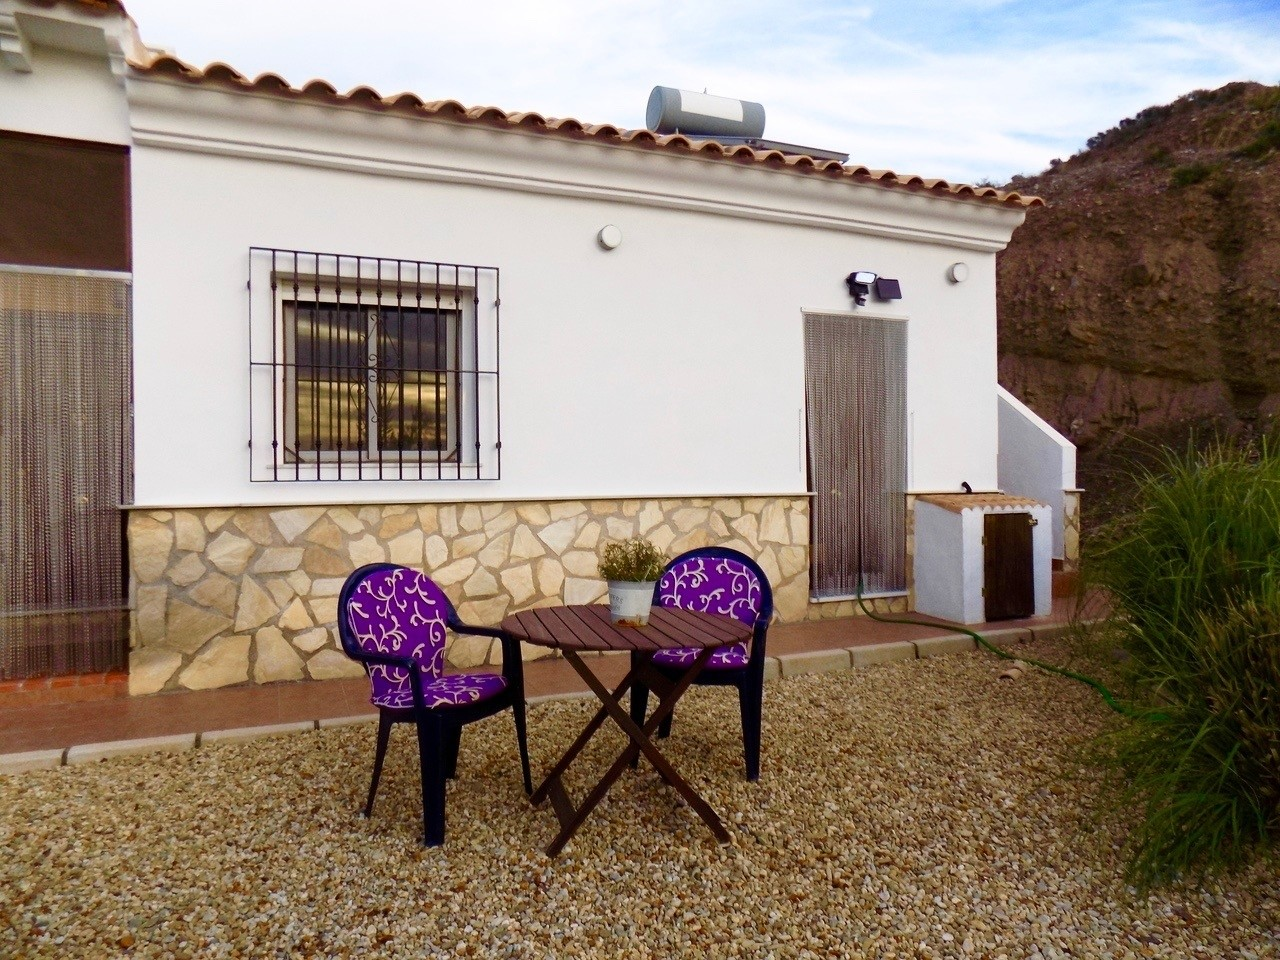 Propery For Sale in Huércal-Overa, Spain image 16